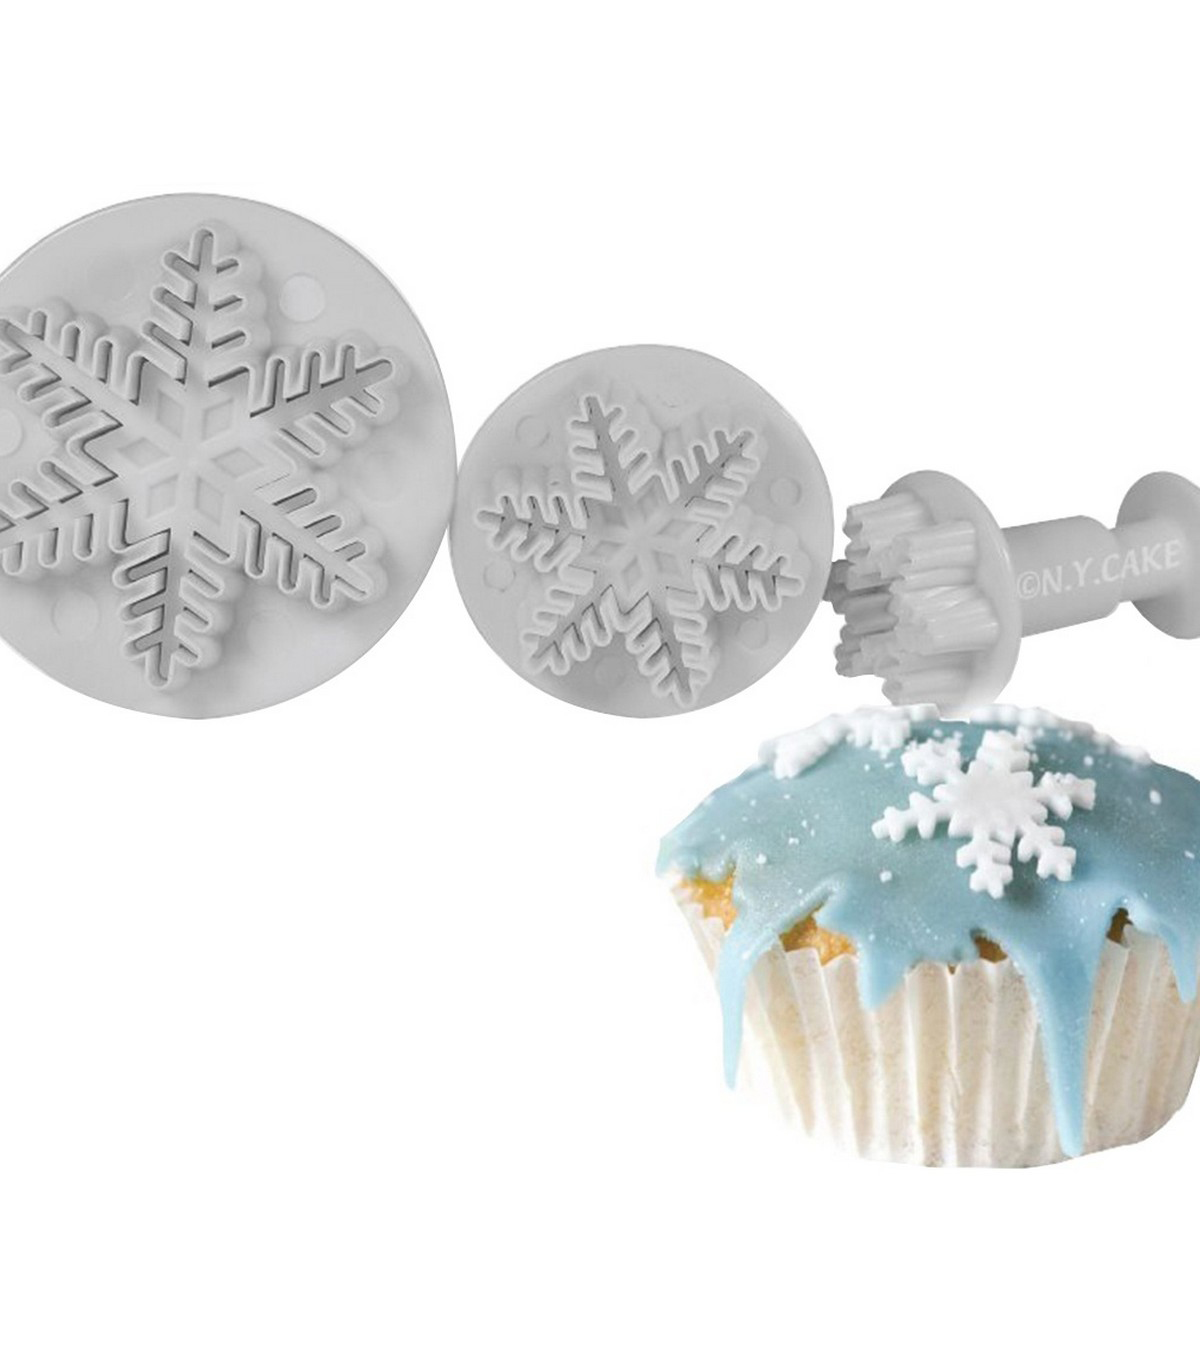 NY Cake 3 pk Plunger Cutters-Snowflake